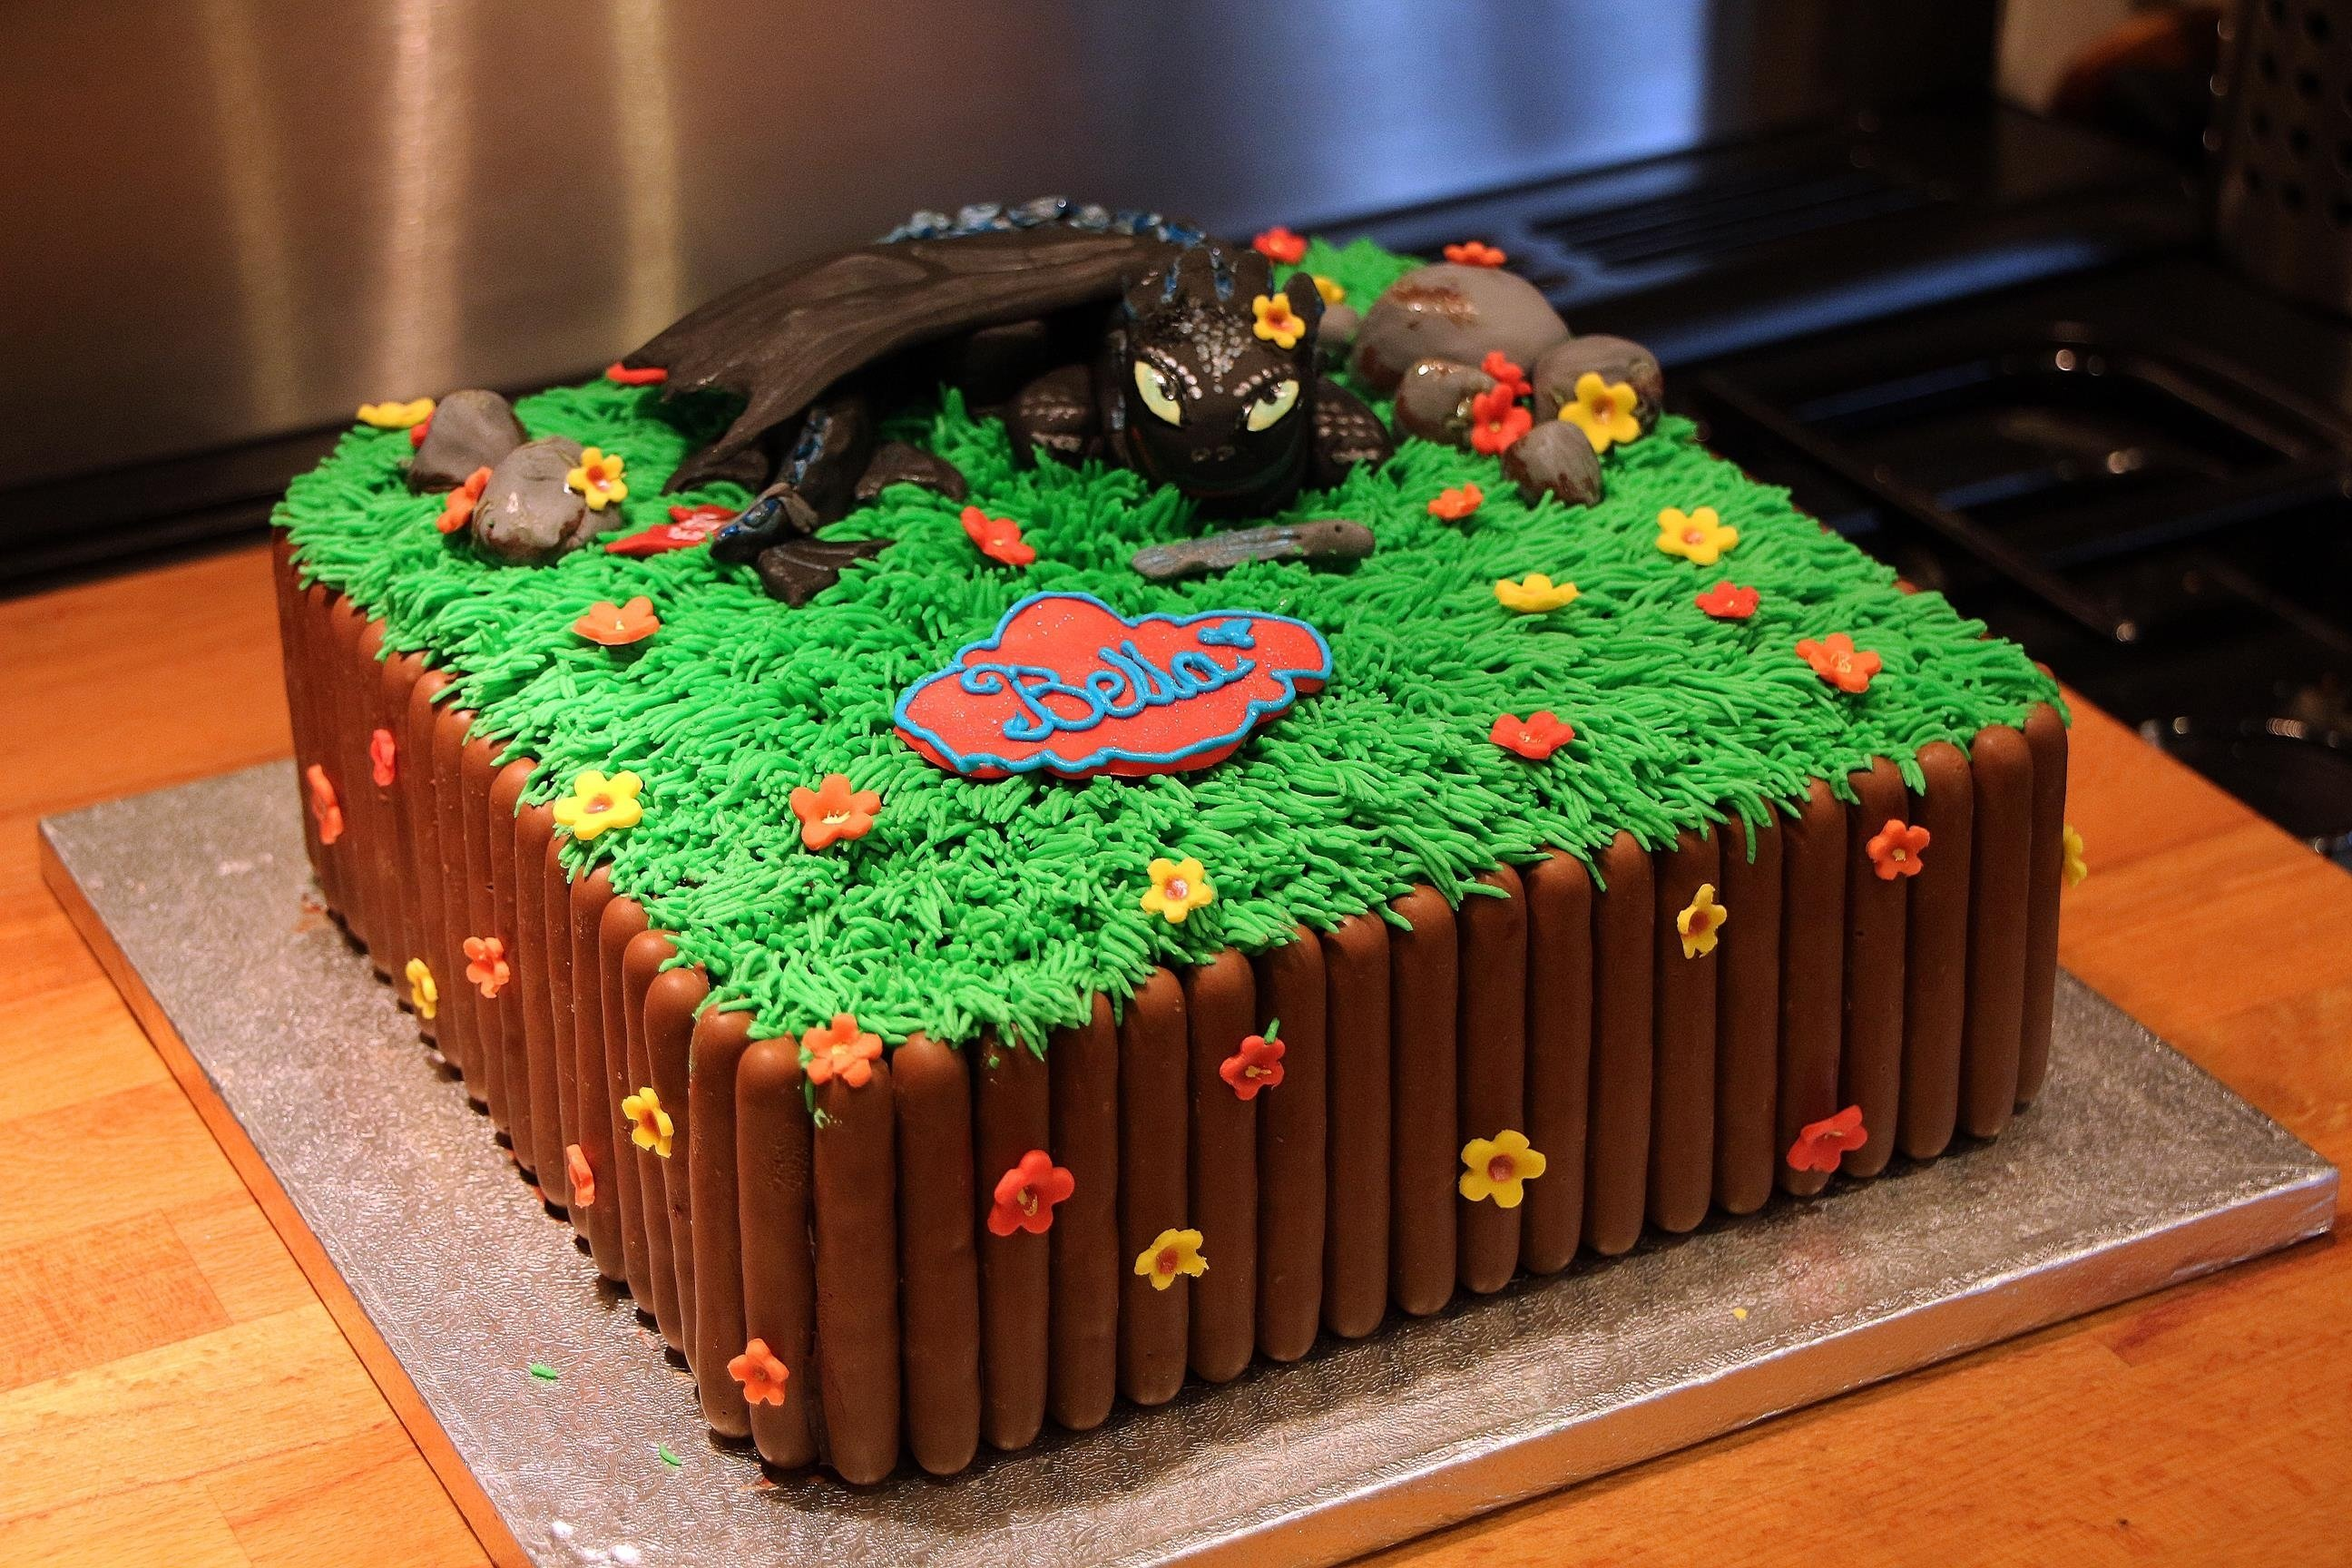 10 Most Recommended How To Train Your Dragon Cake Ideas how to train your dragon toothless cake 2020